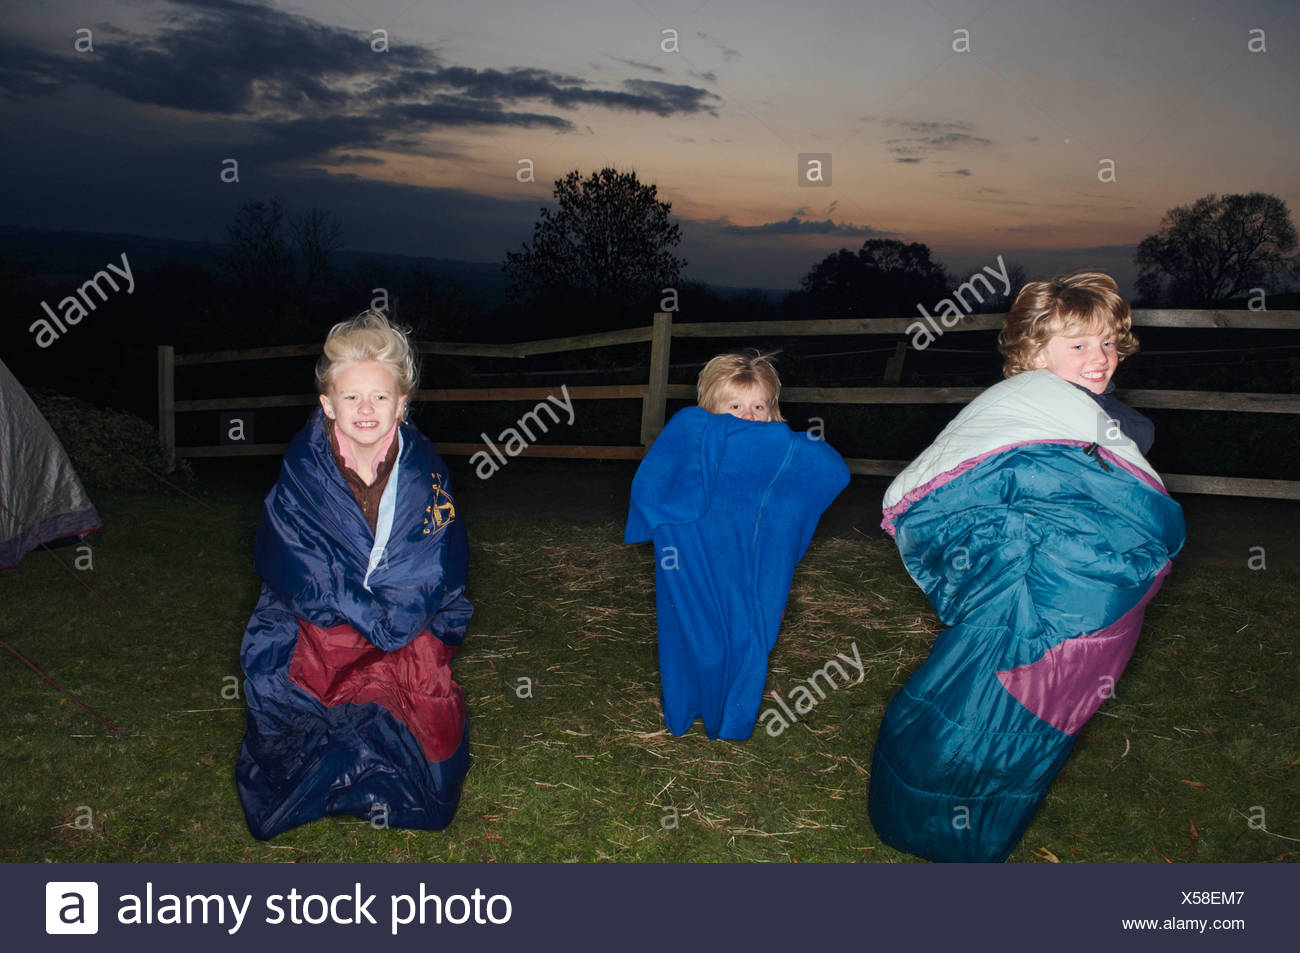 Sleeping bag races at dusk Stock Photo